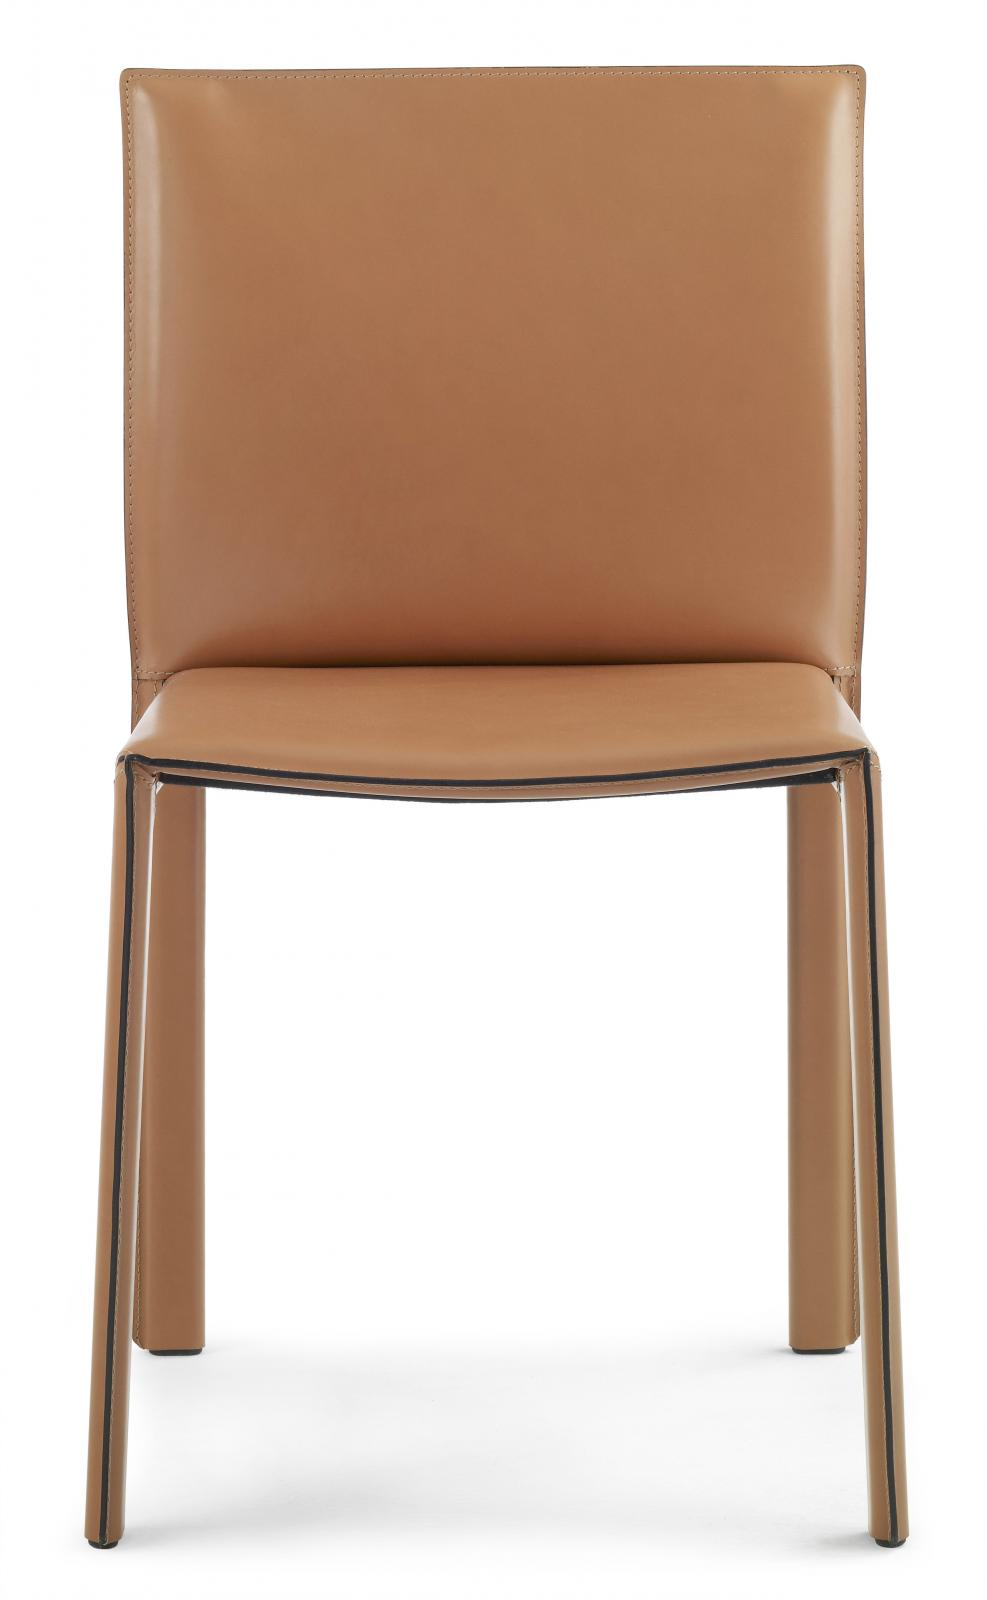 MDC 107 Modern Dining Chairs